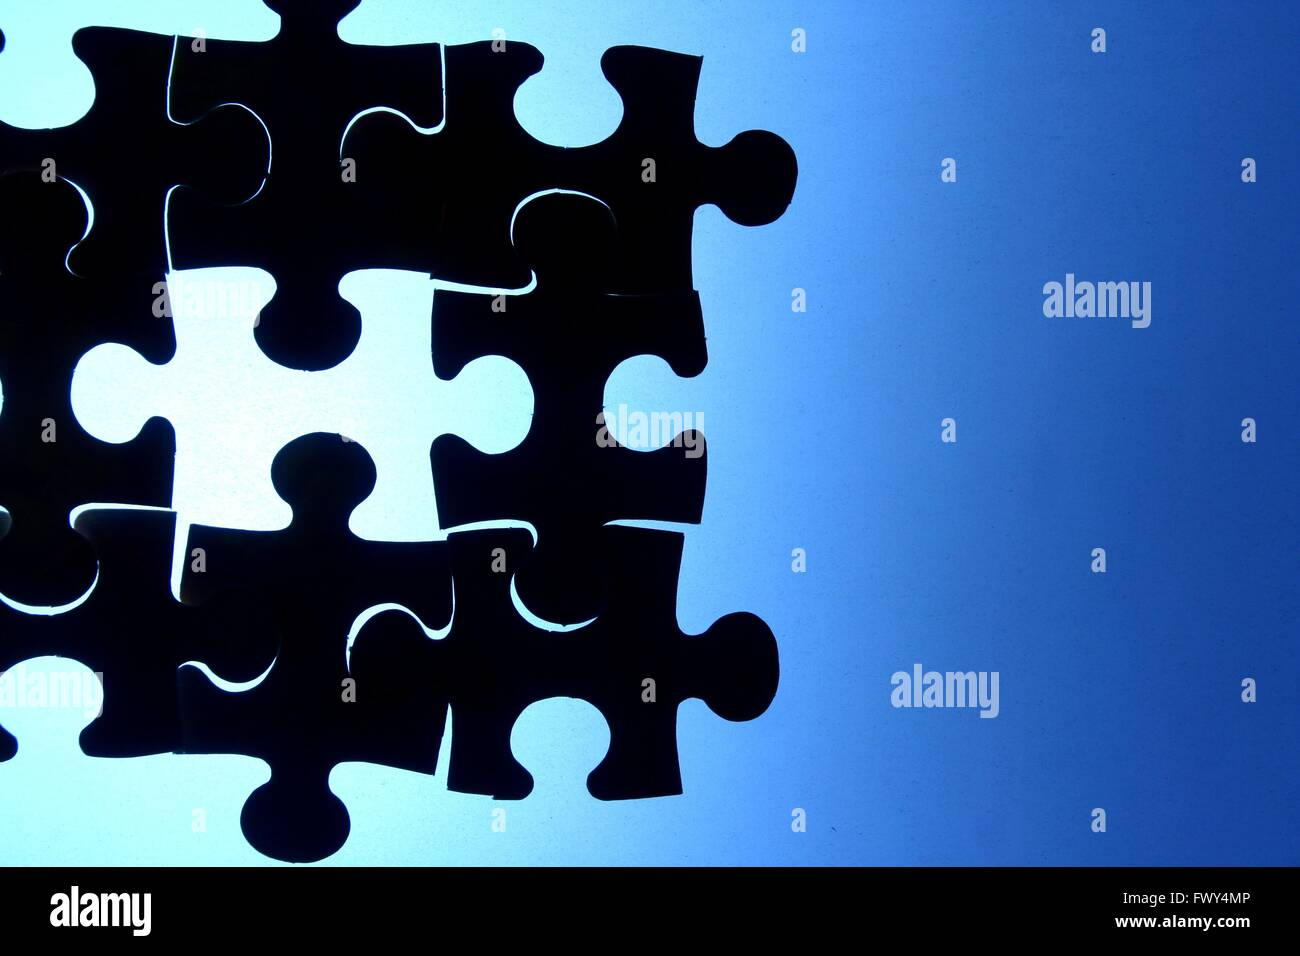 Puzzle, game, play, blue, puzzle piece, hole, missing, solution, problem, solve, solving, jigsaw, jigsaw puzzle, - Stock Image